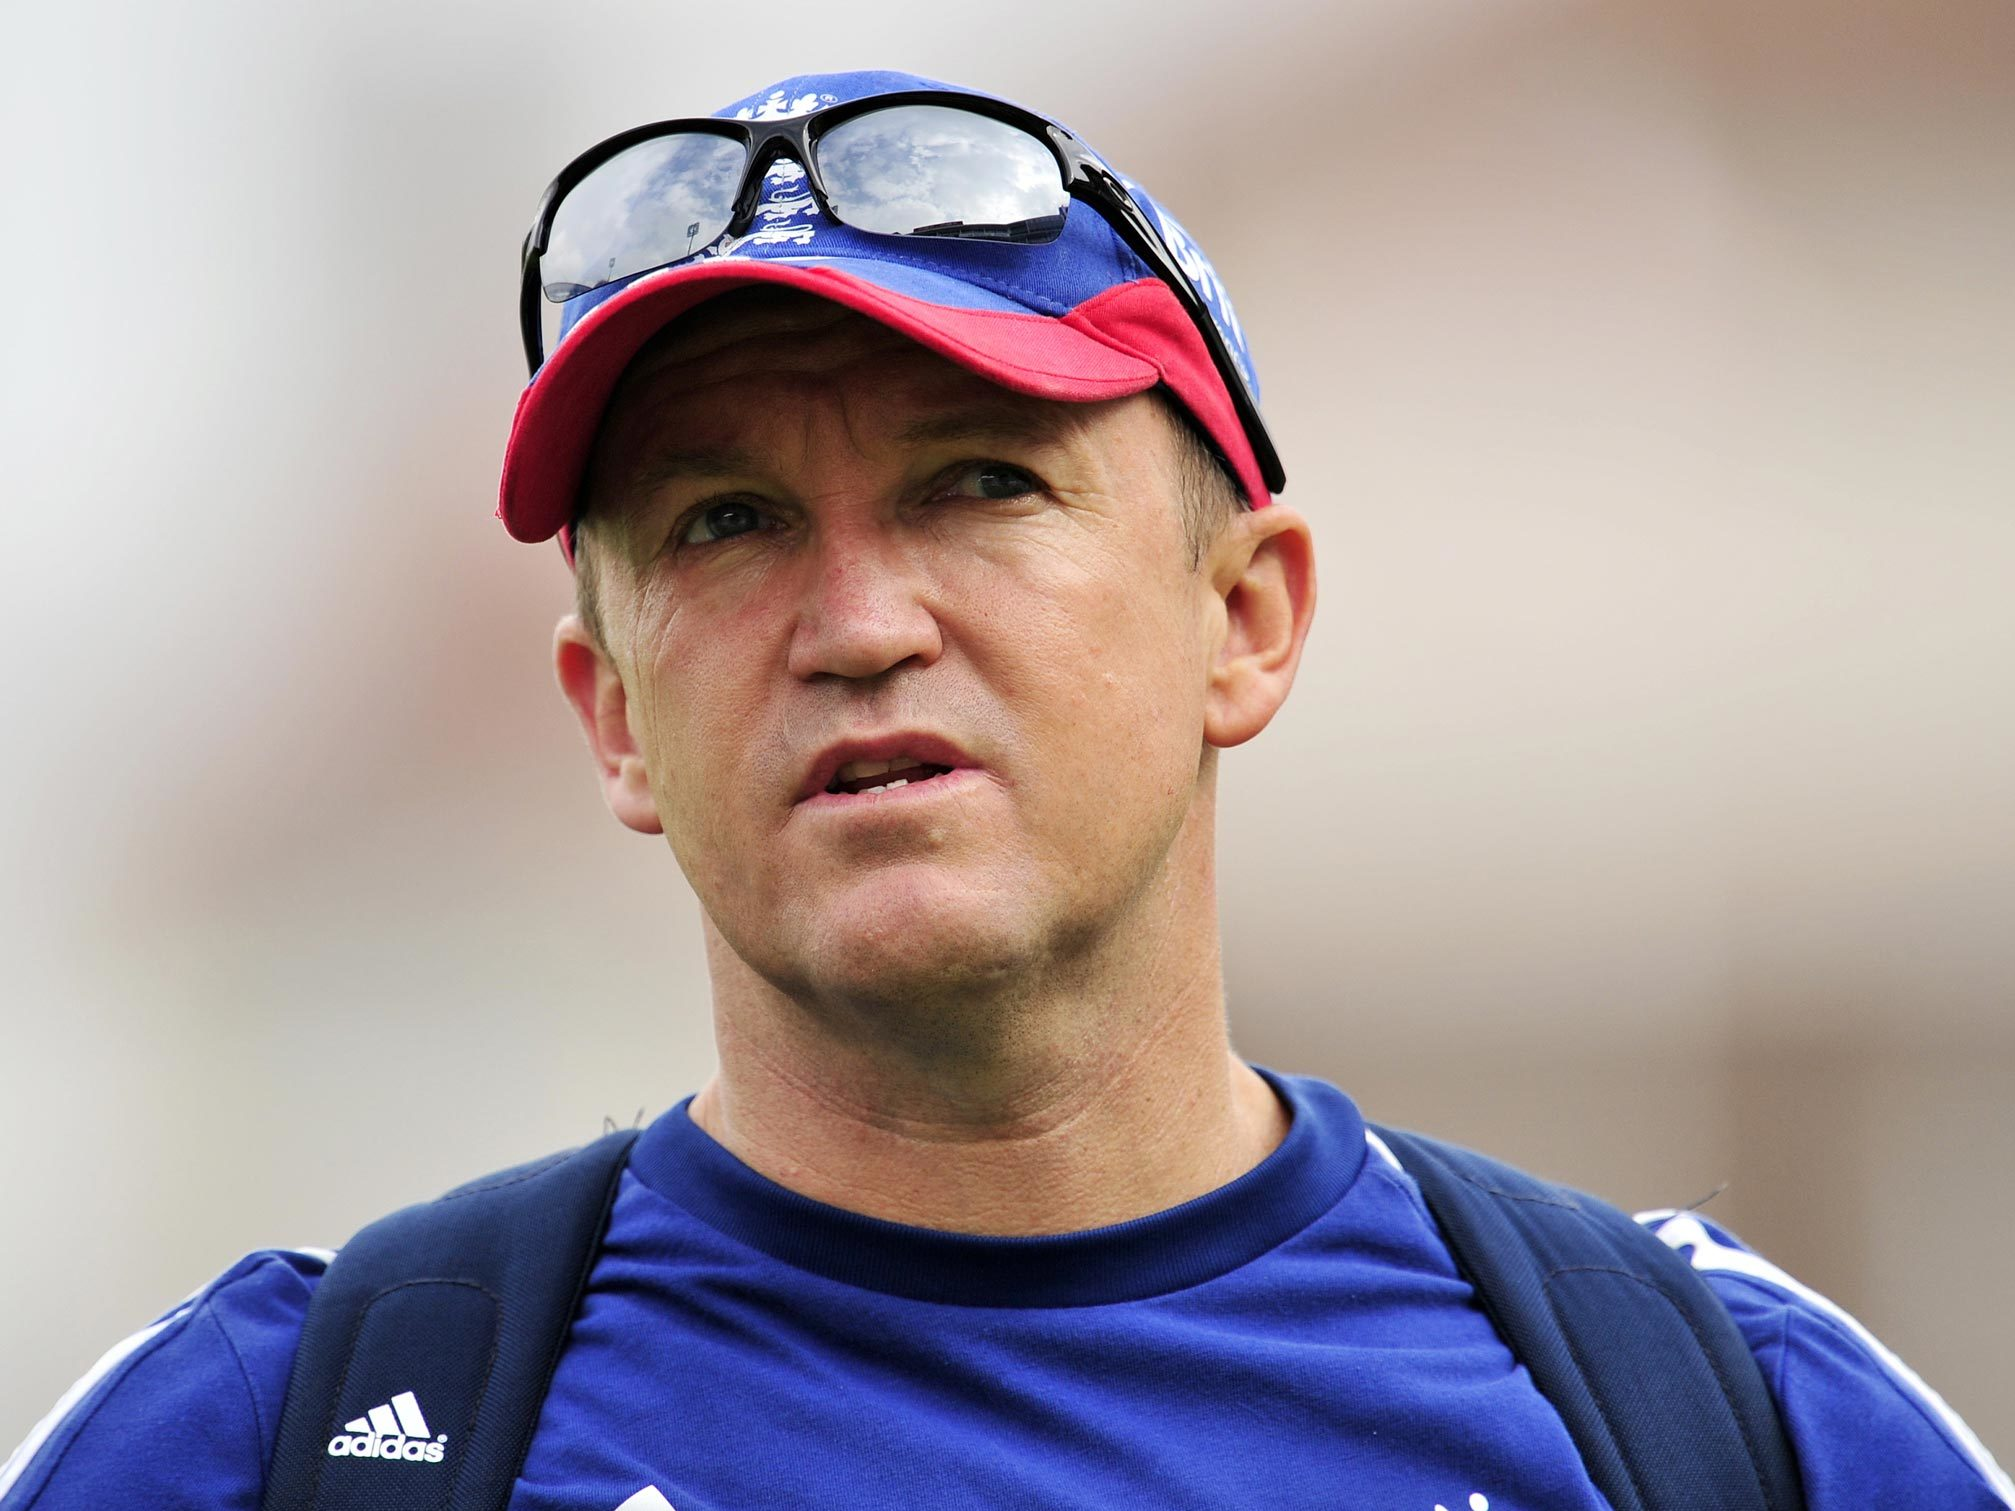 England cricket: Former head coach Andy Flower leaves set-up after 12 years  of involvement | The Independent | The Independent